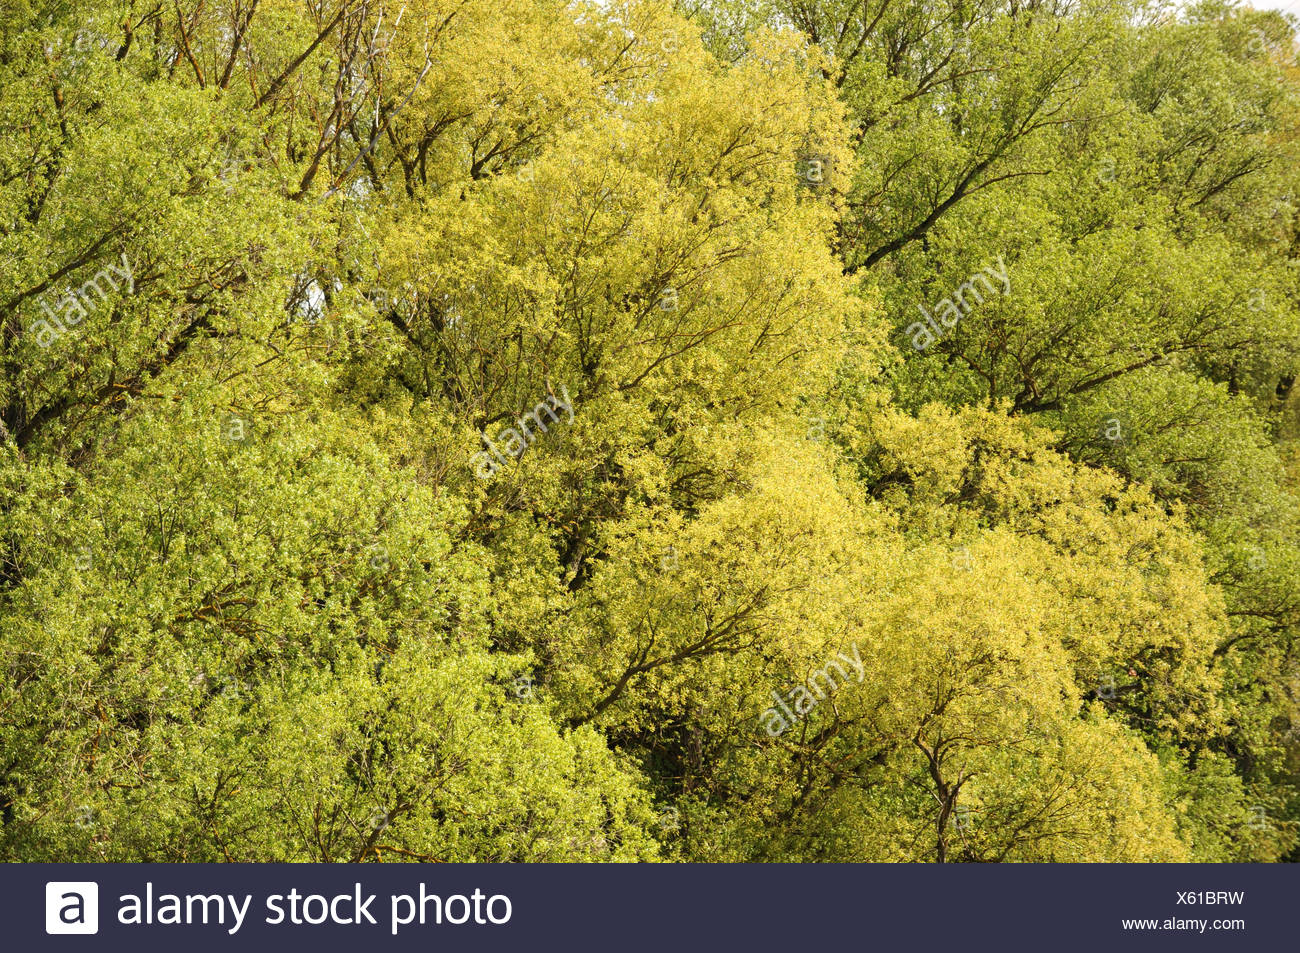 Silver willows - Stock Image